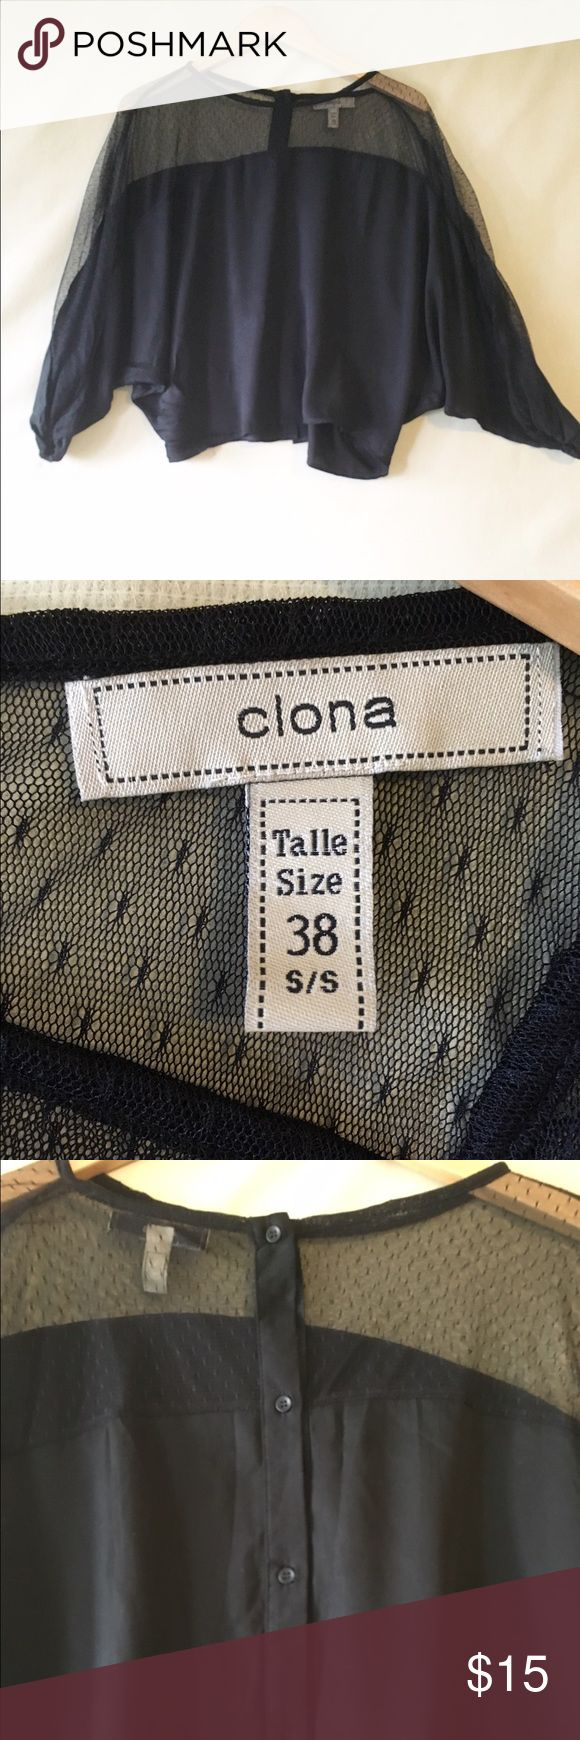 Clona brand Dolman style split sleeve top Women's size 8 top by Clona. Top features Dolman sleeves with split arms, the upper part of the top is lace with buttons going down the entire back. Top is in excellent condition, no signs of wear. Clona Tops